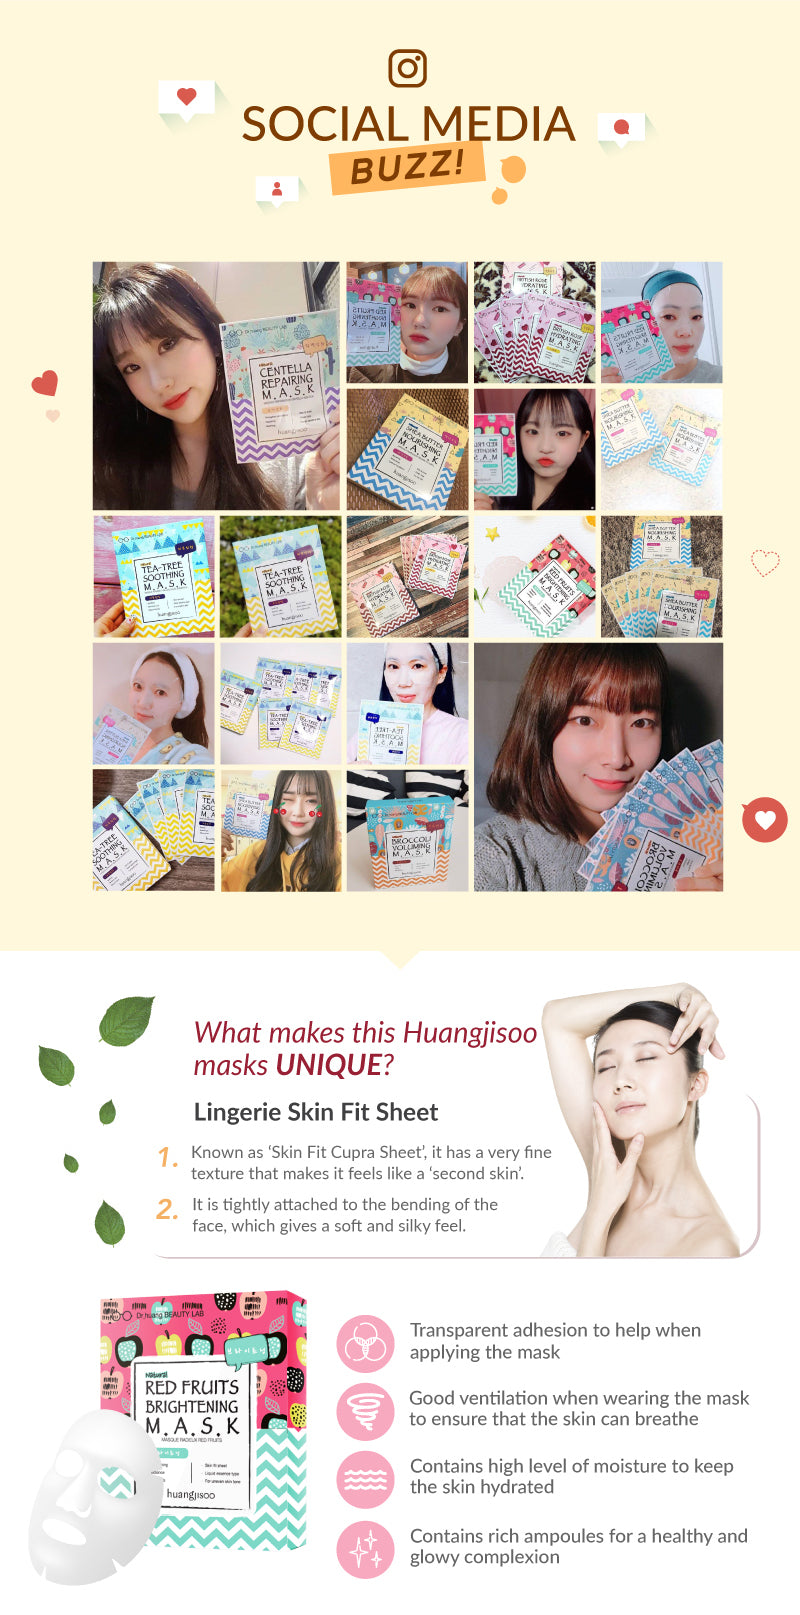 Check out the Social media hype and buzz created in Korea with Huangjisoo Facial Mask sheet made for sensitive skin. The Huangjisoo Red Fruit Brightening Facial Mask is great for radiance, brightening, whitening and luminous skin. Its liquid essence and skin fit material is great for people that has uneven skin tone